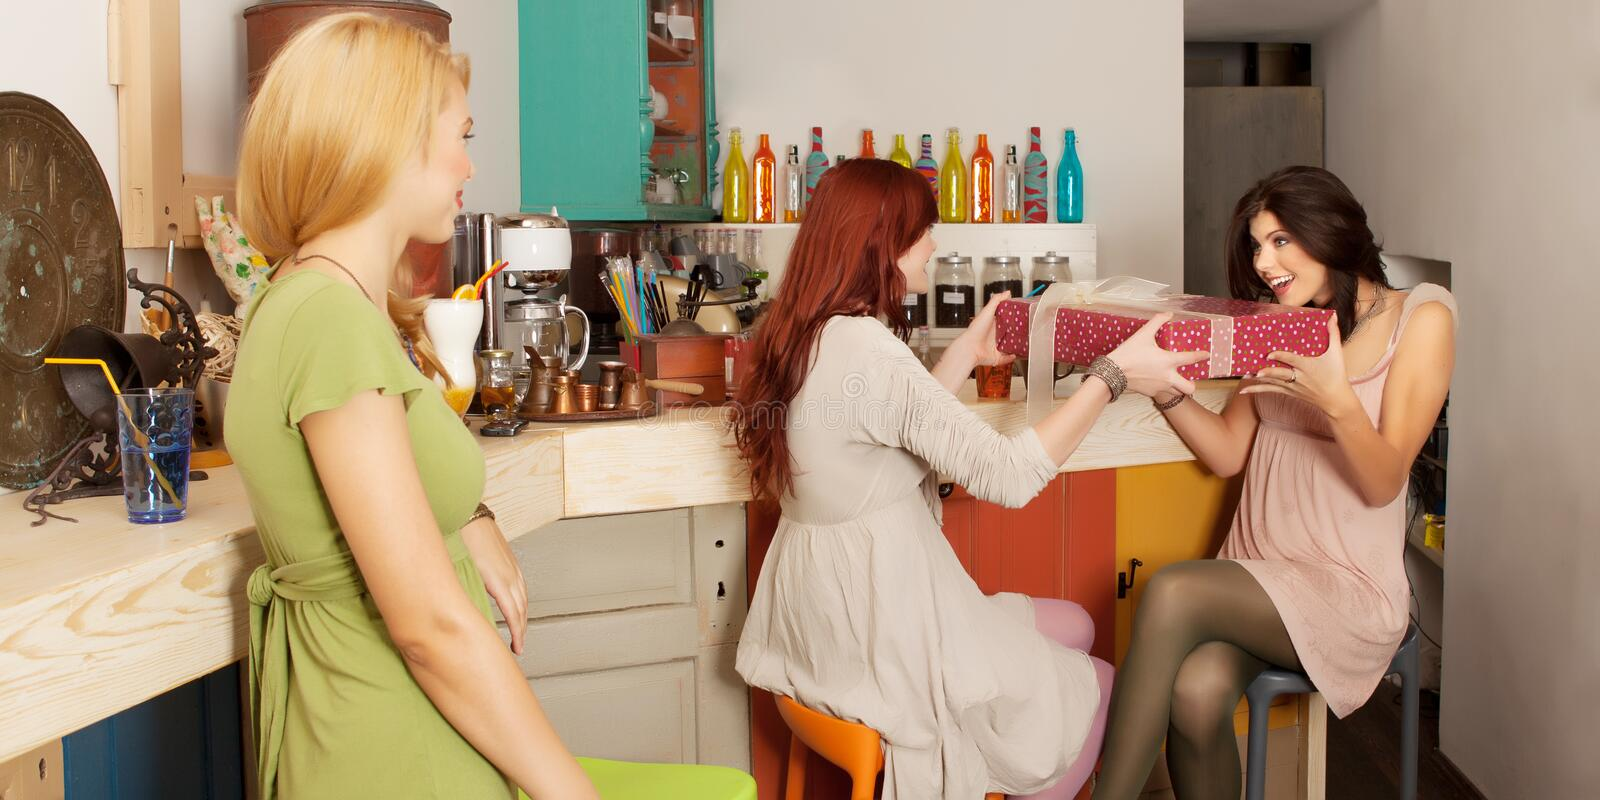 Download Girls Exchanging Gifts In Colorful Cafe Stock Photo - Image: 29045060